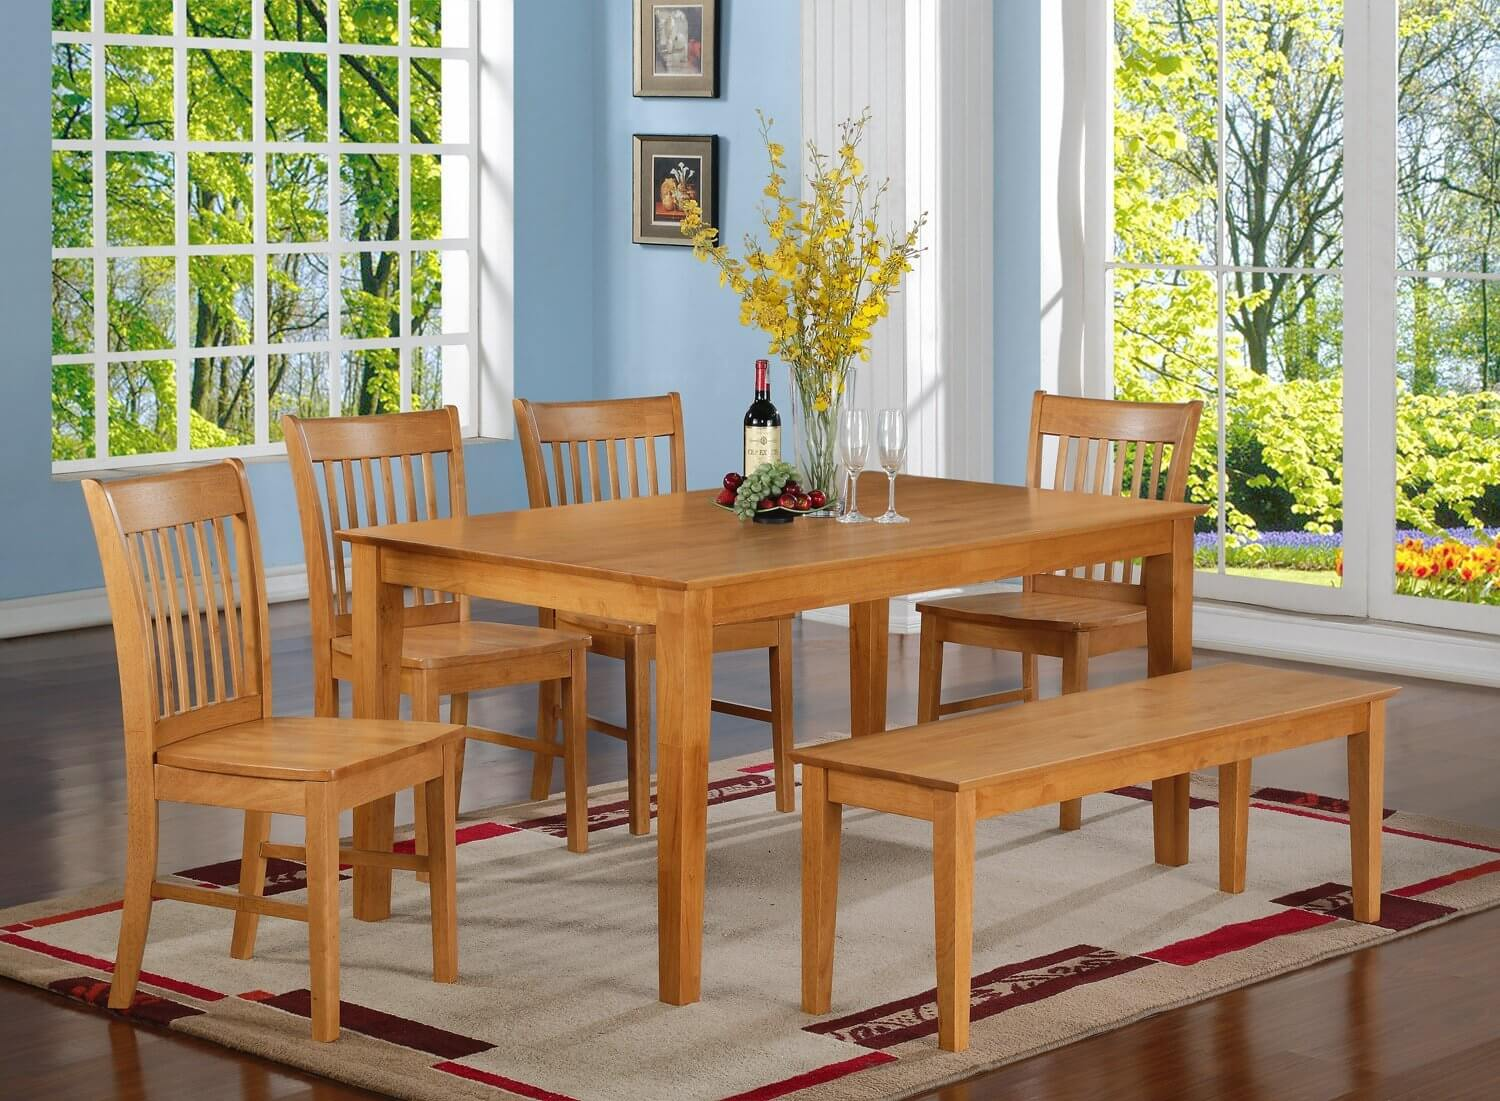 Kitchen Furniture Sets 26 Big Small Dining Room Sets With Bench Seating